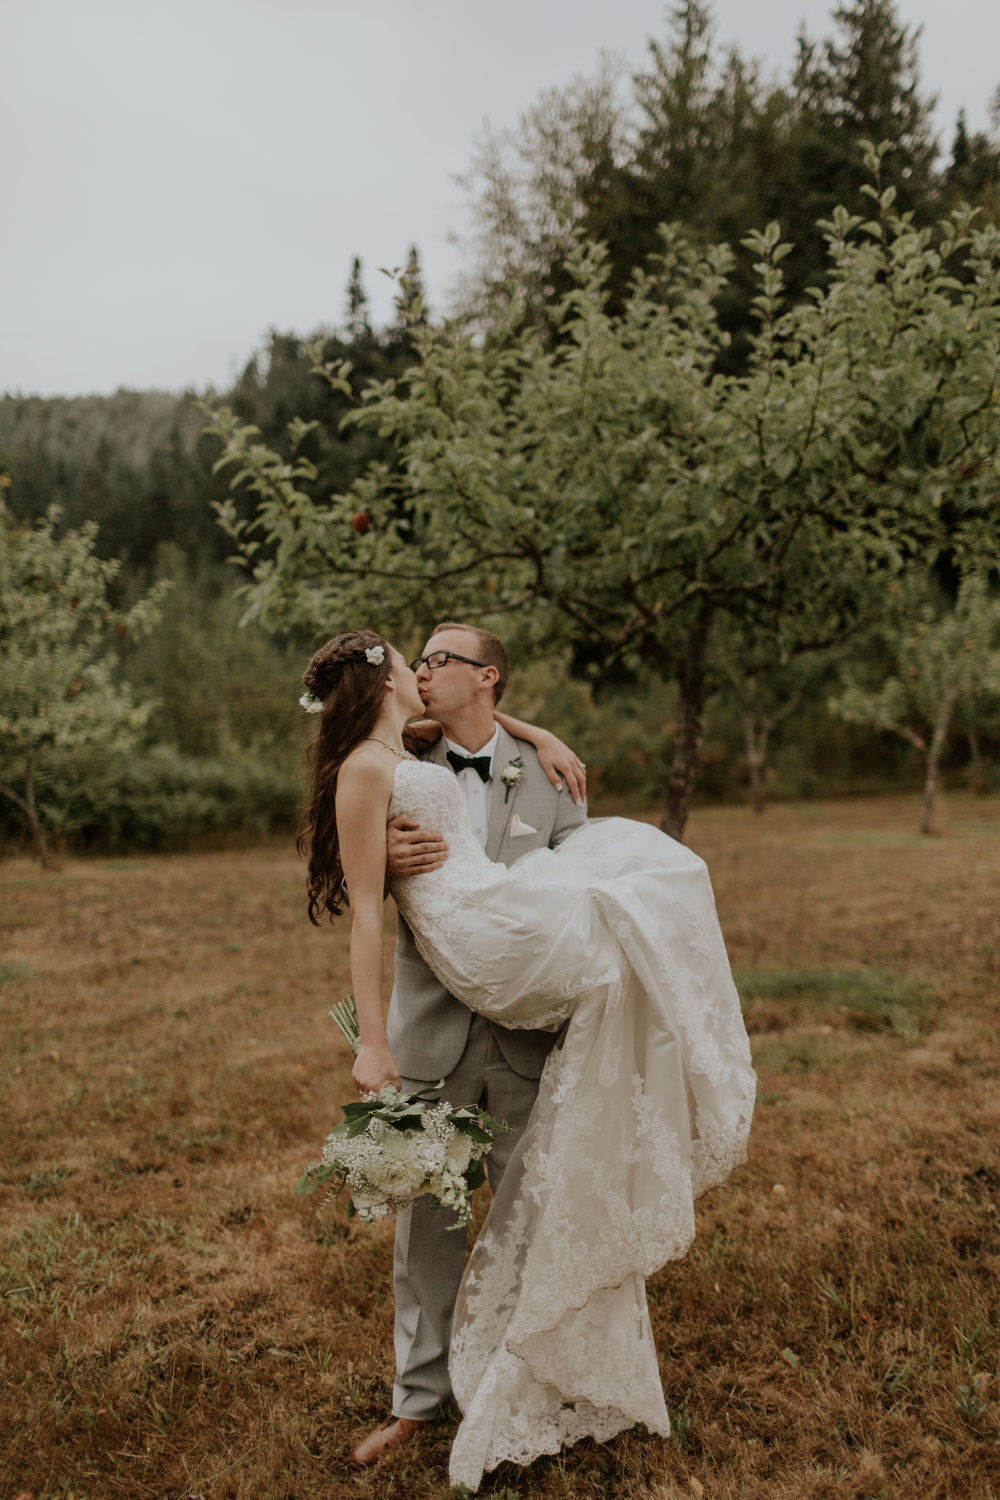 Port-Angeles-elopement-wedding-pnw-olympic-peninsula-photographer-portrait-kayladawnphoto-kayla-dawn-photography-olympic-national-park-177.jpg